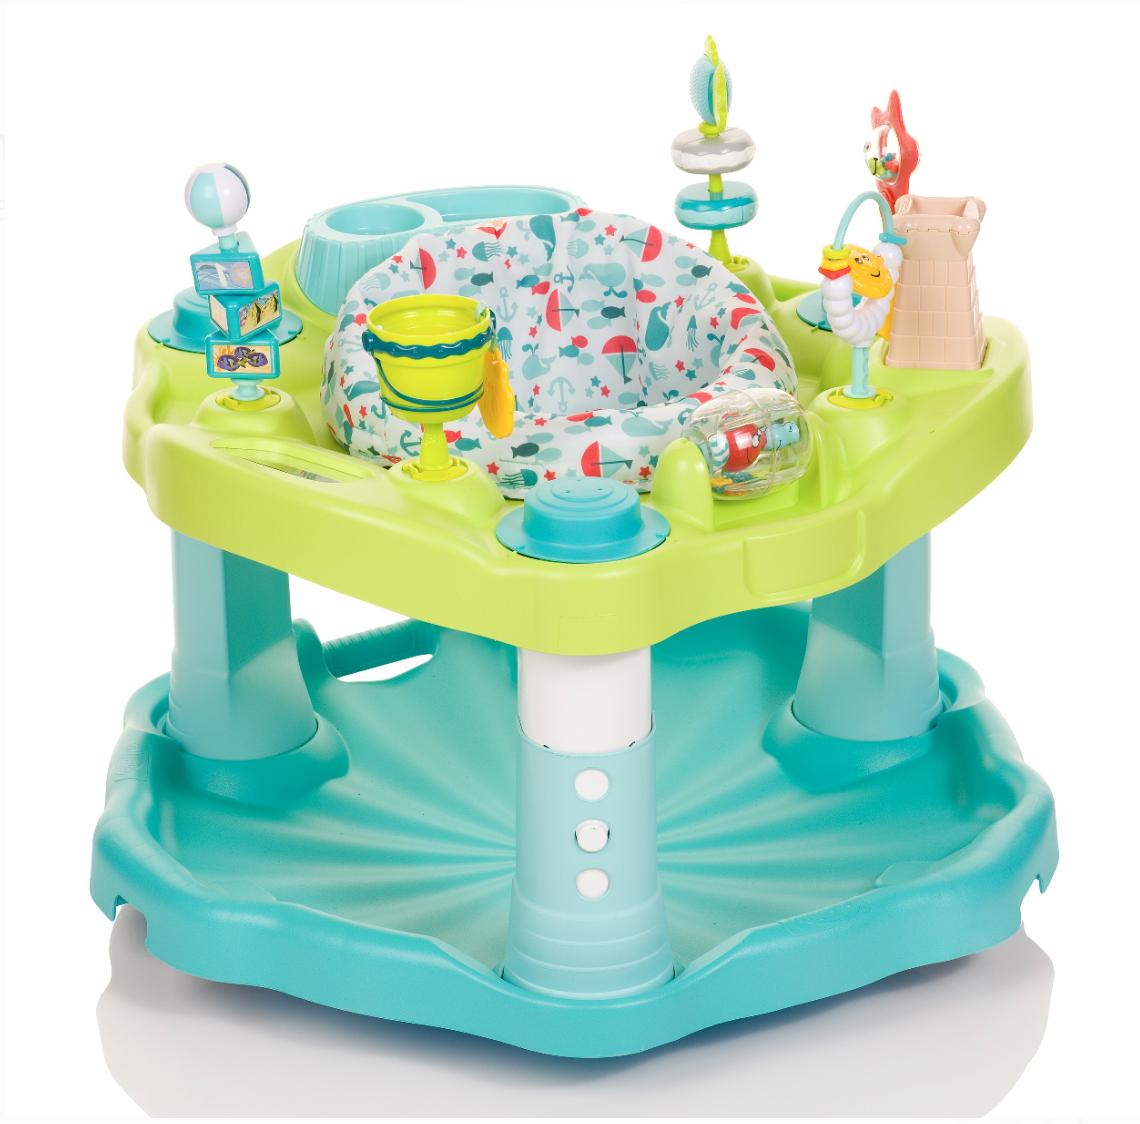 Evenflo Exersaucer Seaside Splash Unique